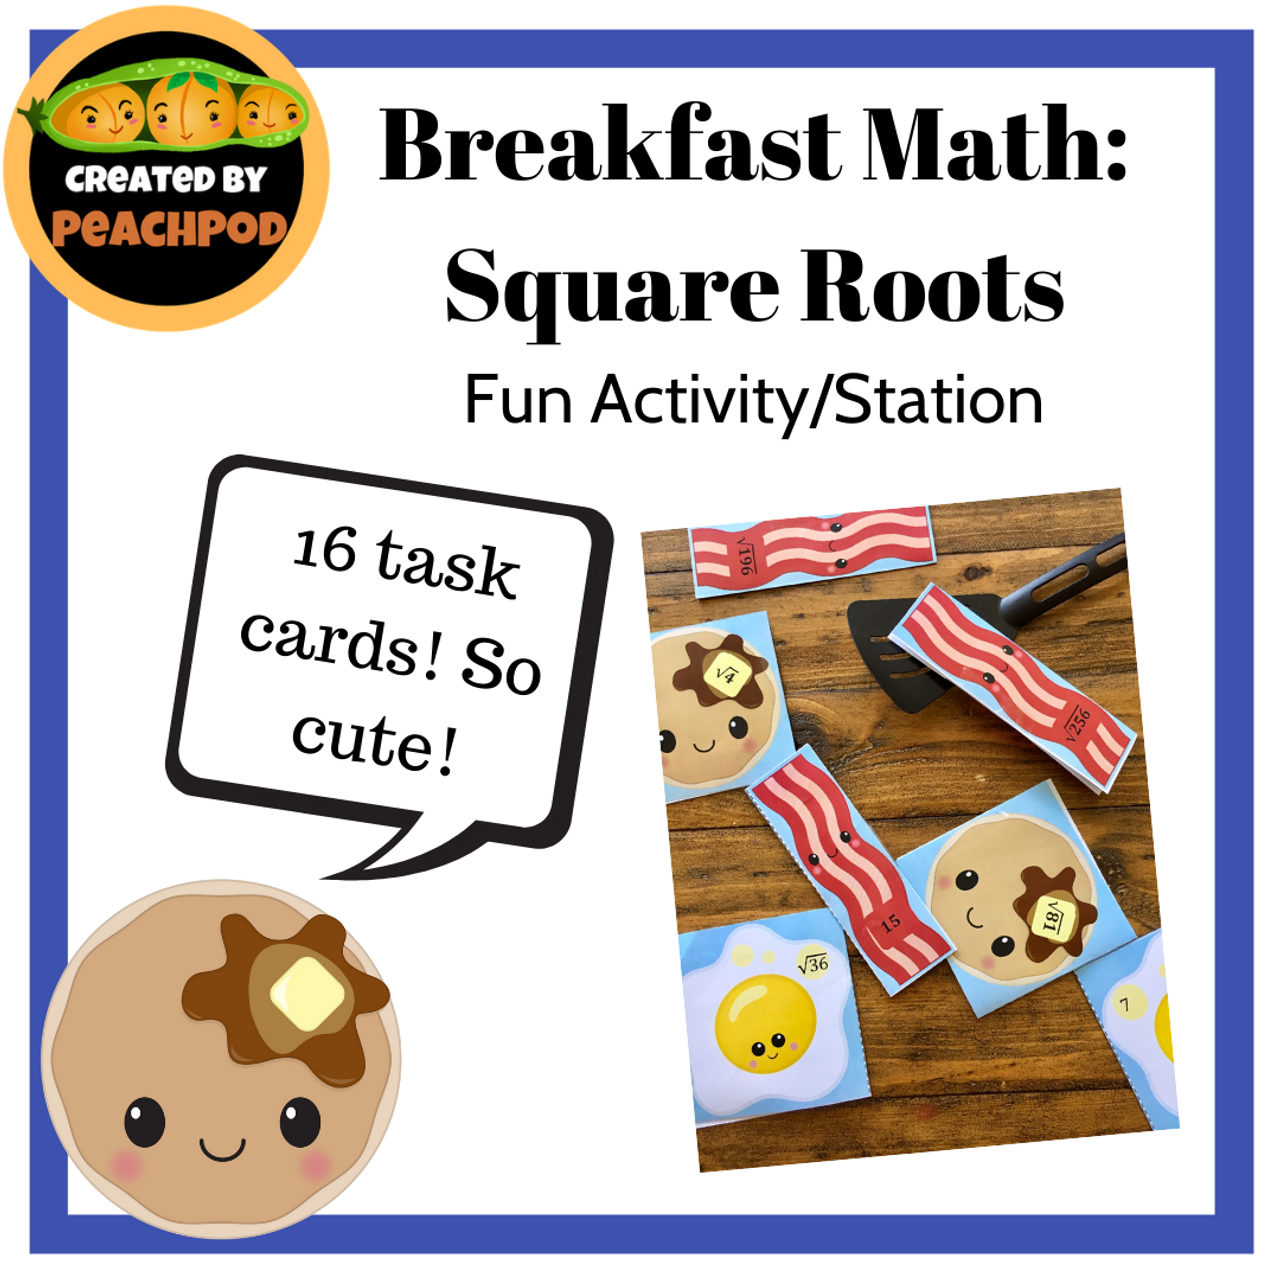 Breakfast Math:  Square Roots - Fun Activity/Station